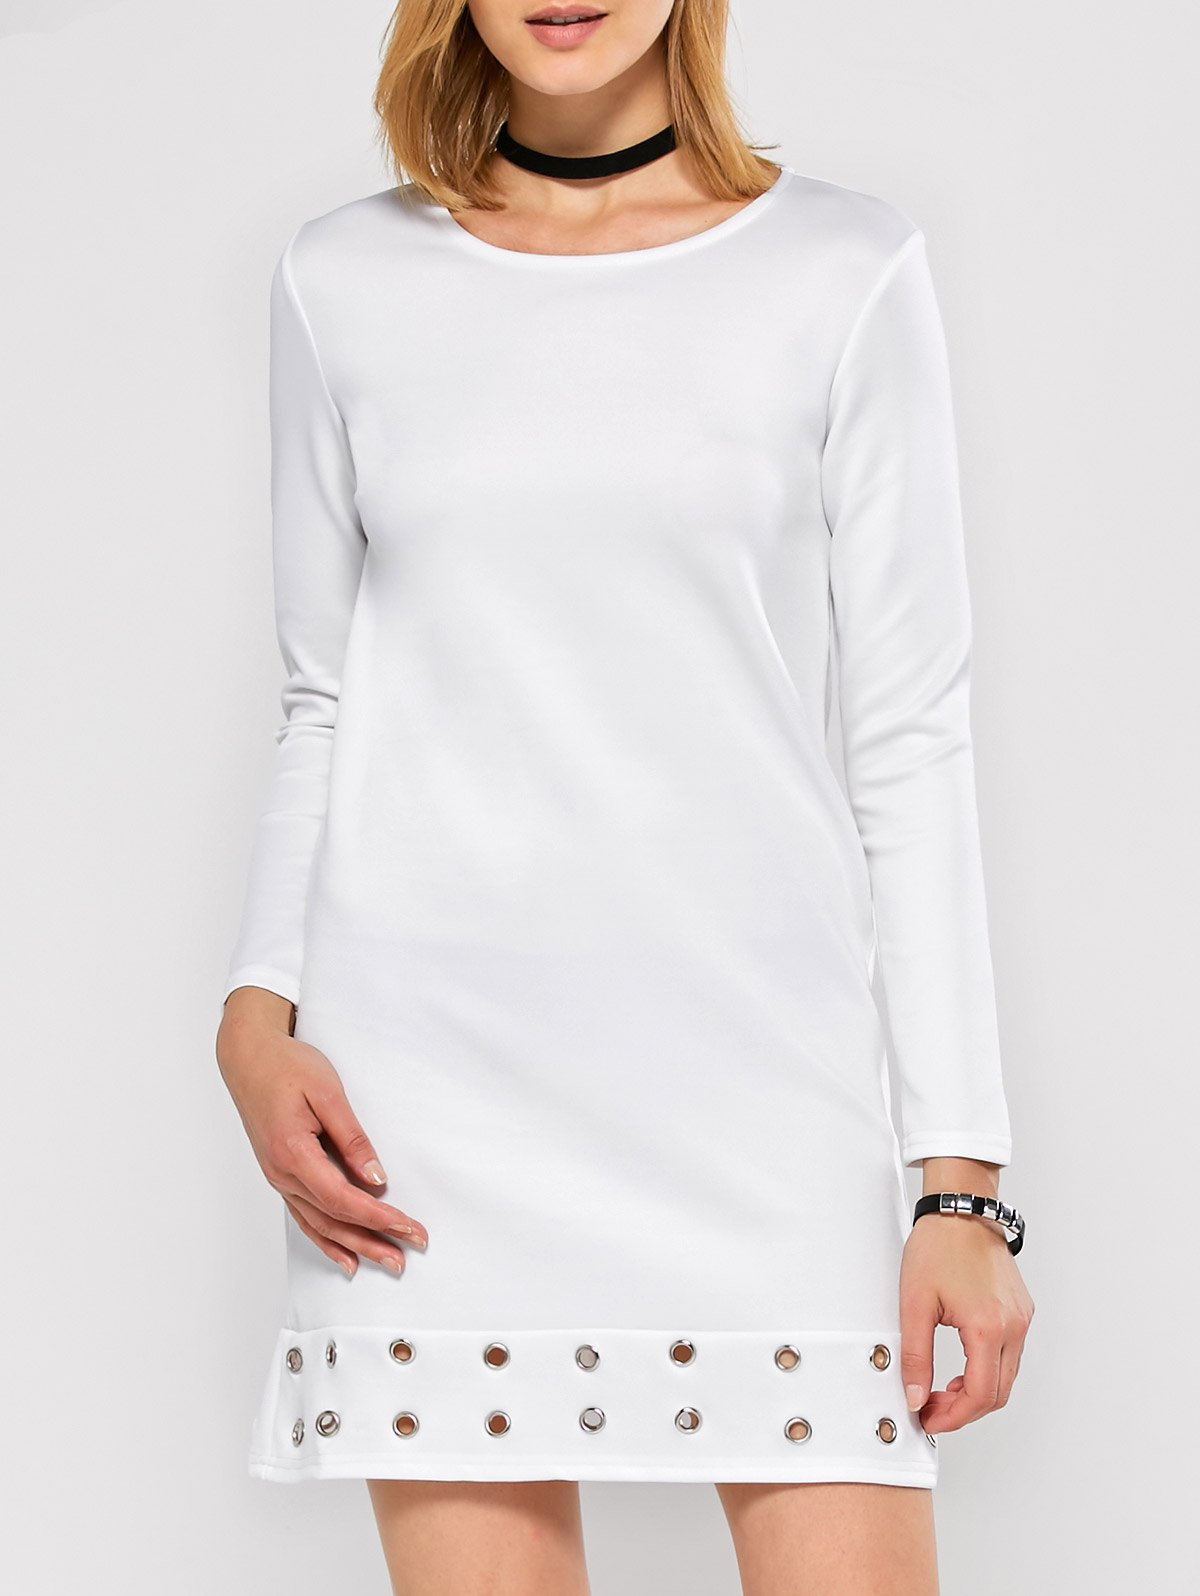 Jewel Neck Long Sleeve Hollow Out Dress